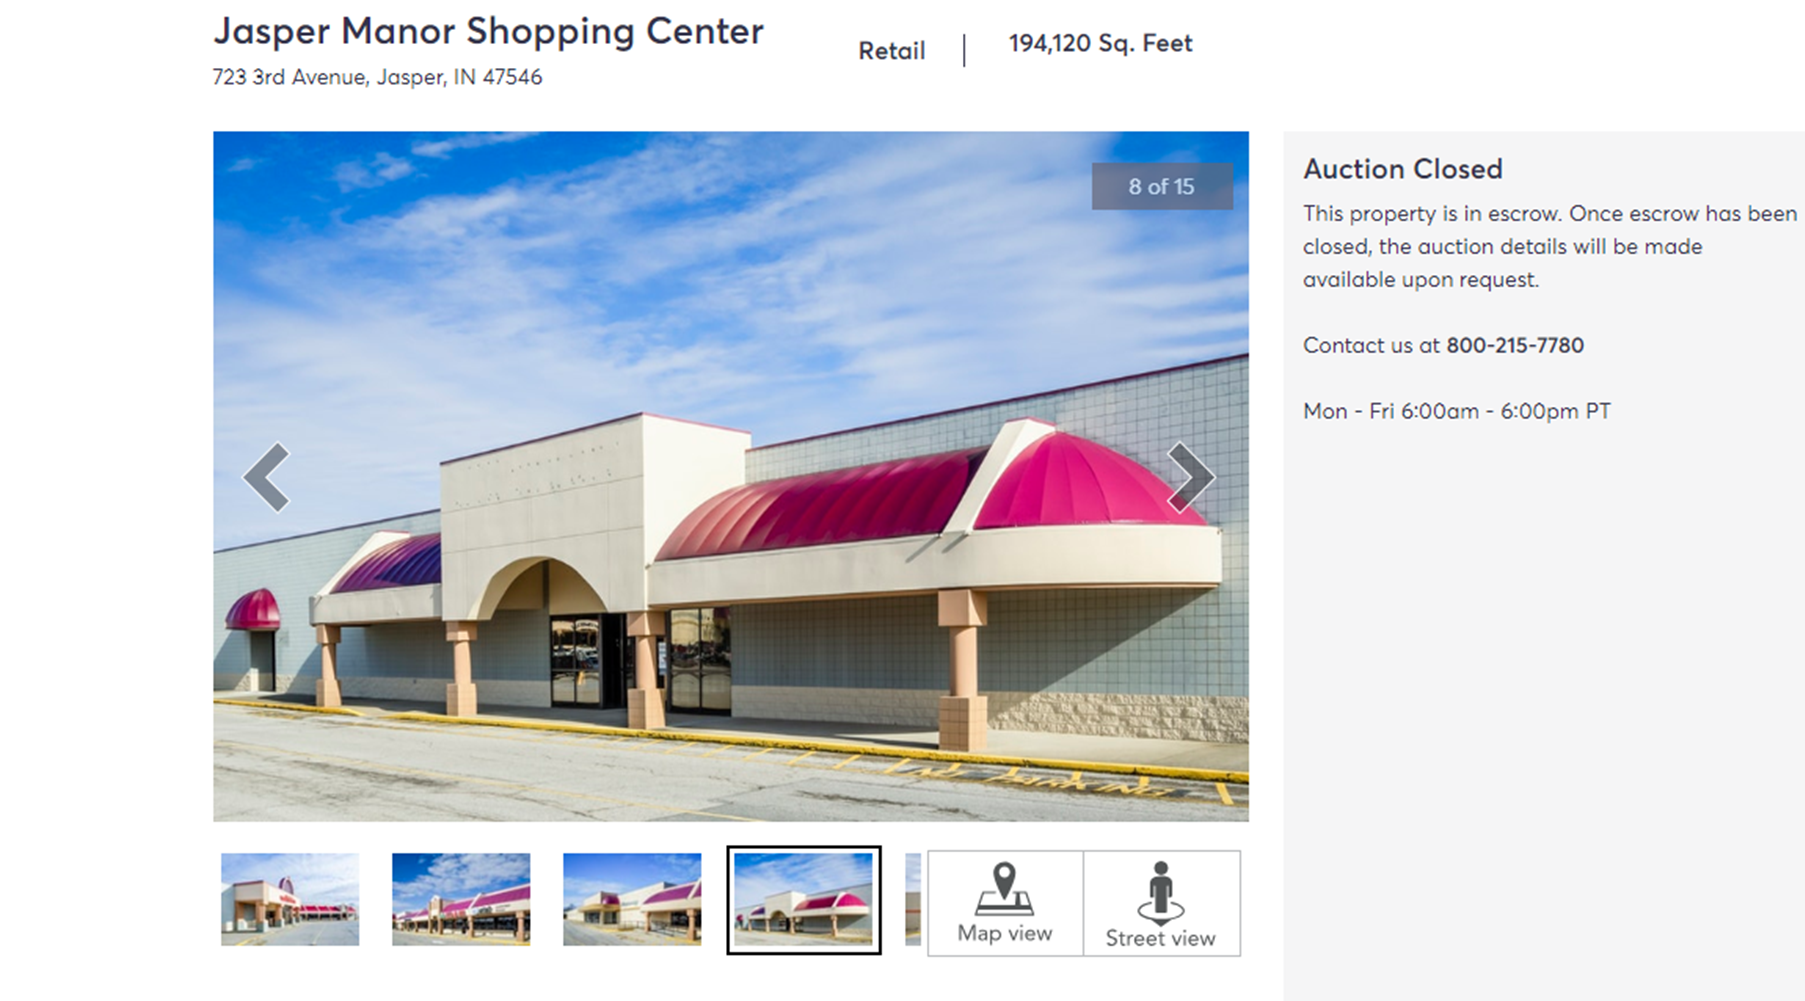 DEVELOPING:  Jasper Manor Shopping Center Has Been Auctioned for $1.8 Million Online